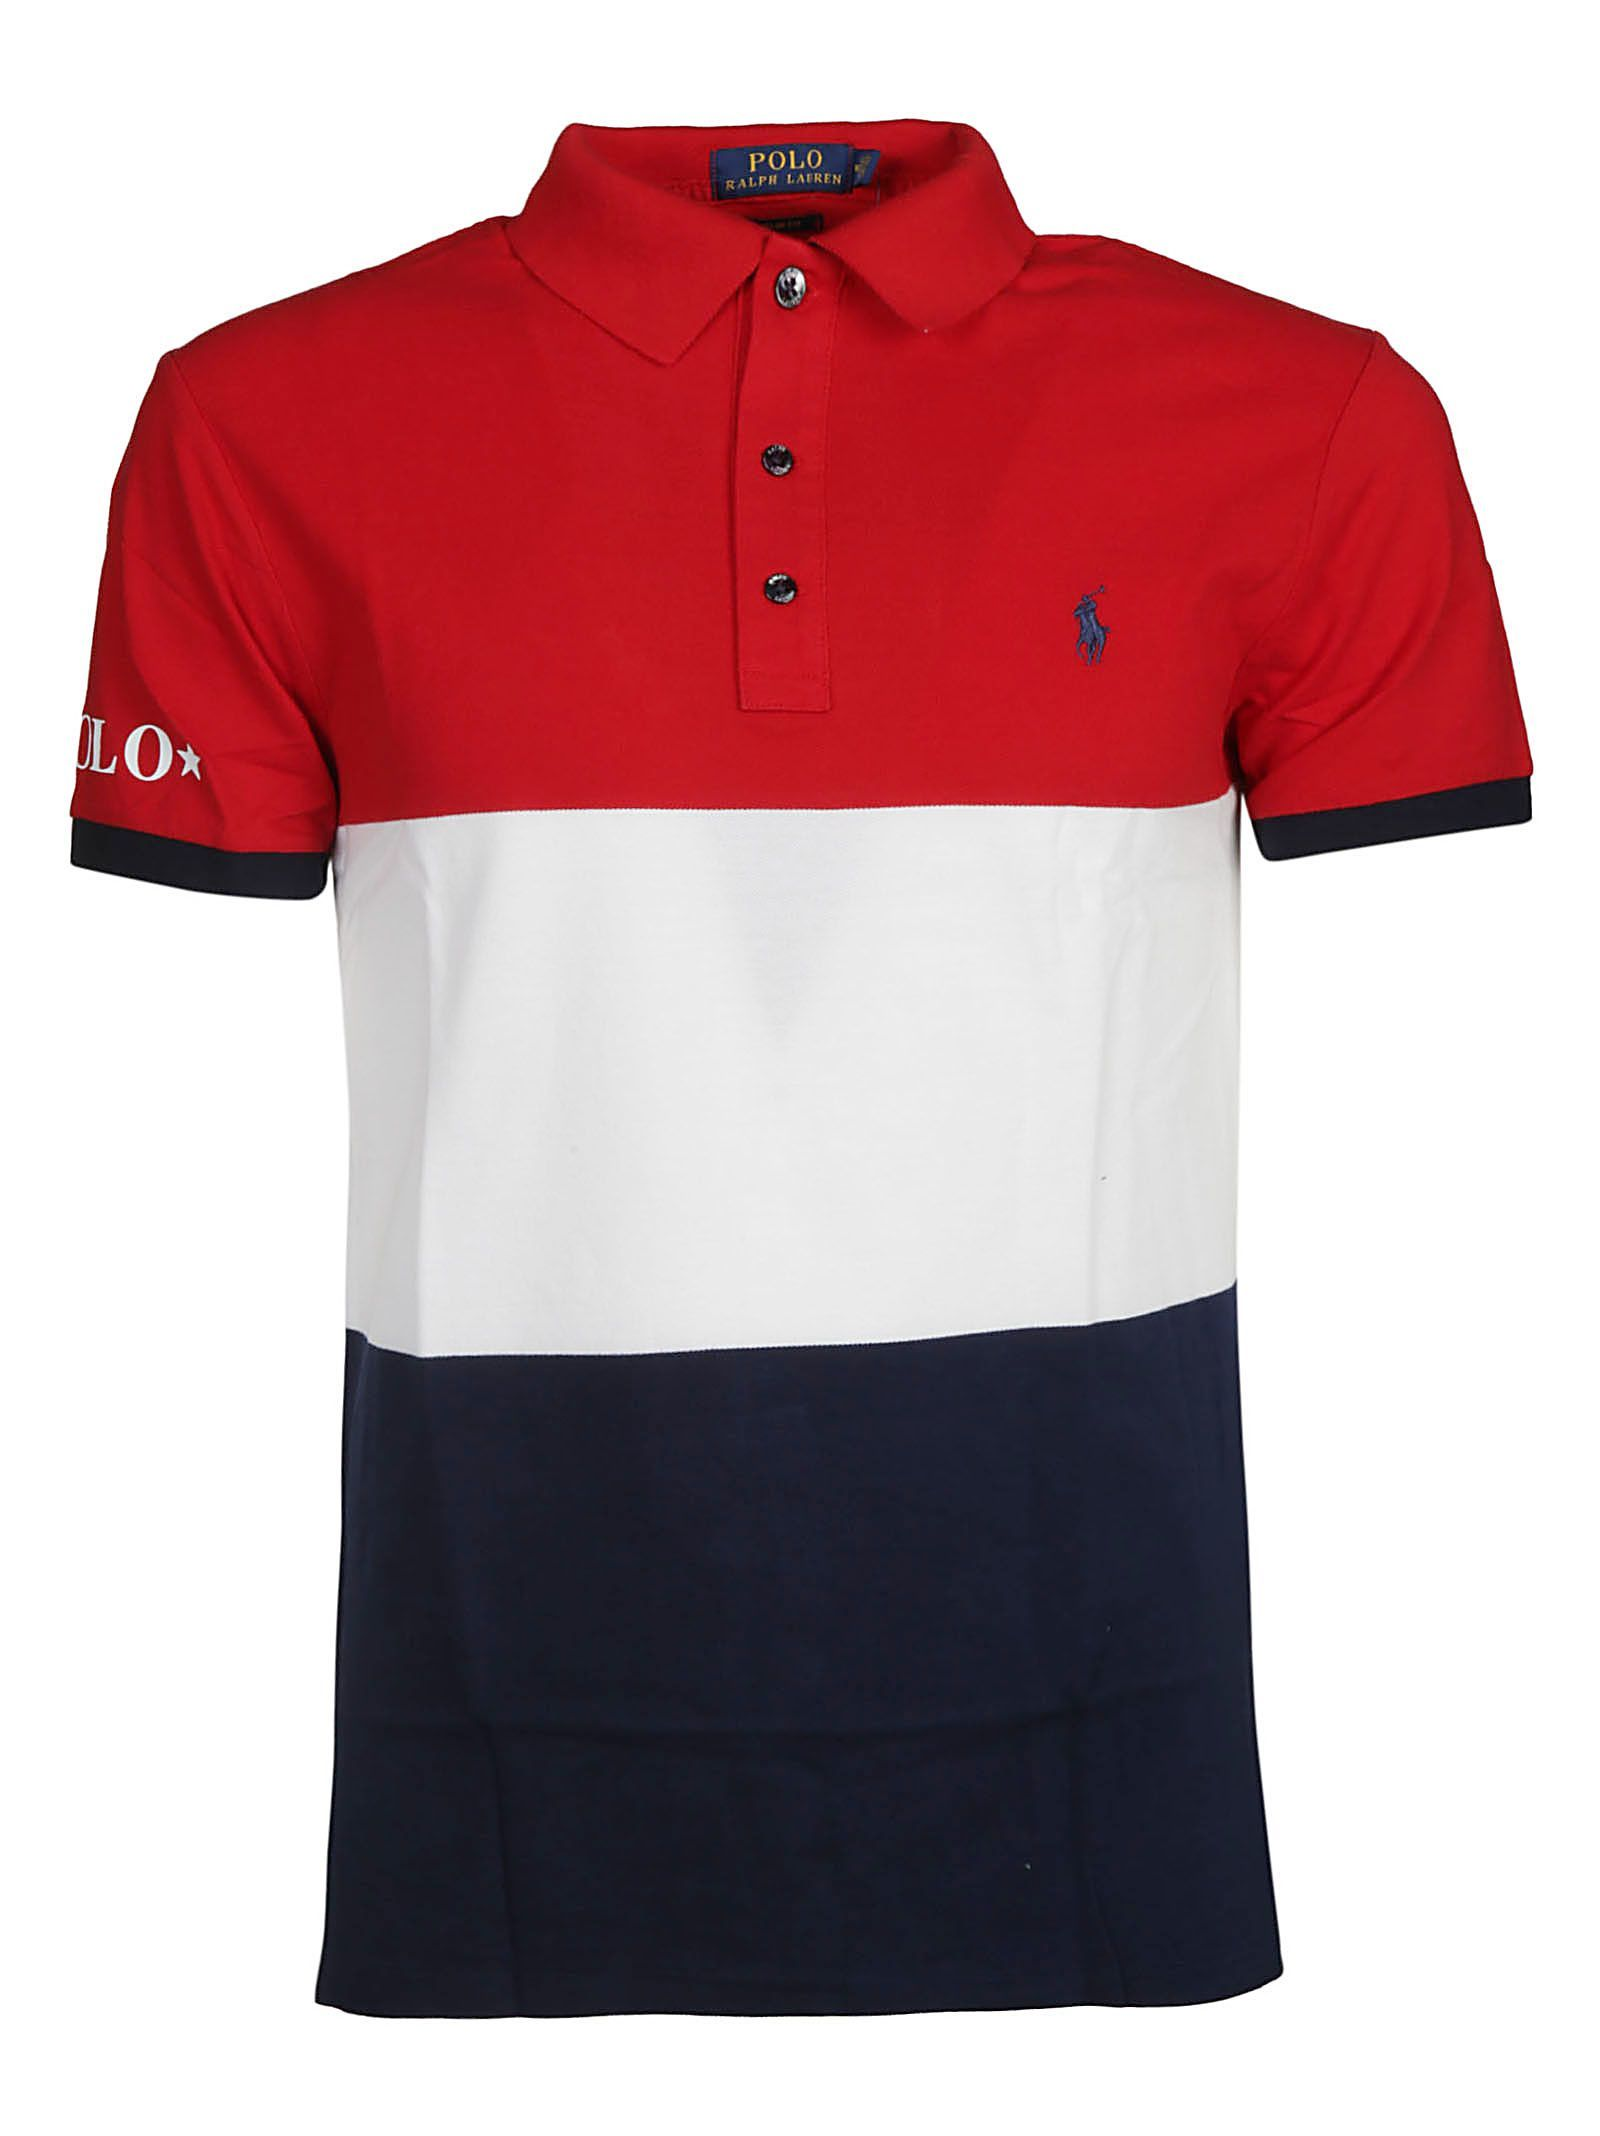 Ralph Lauren Color Block Polo Shirt In Red Multicolor Modesens Polo Shirt Style Polo Polo Shirt